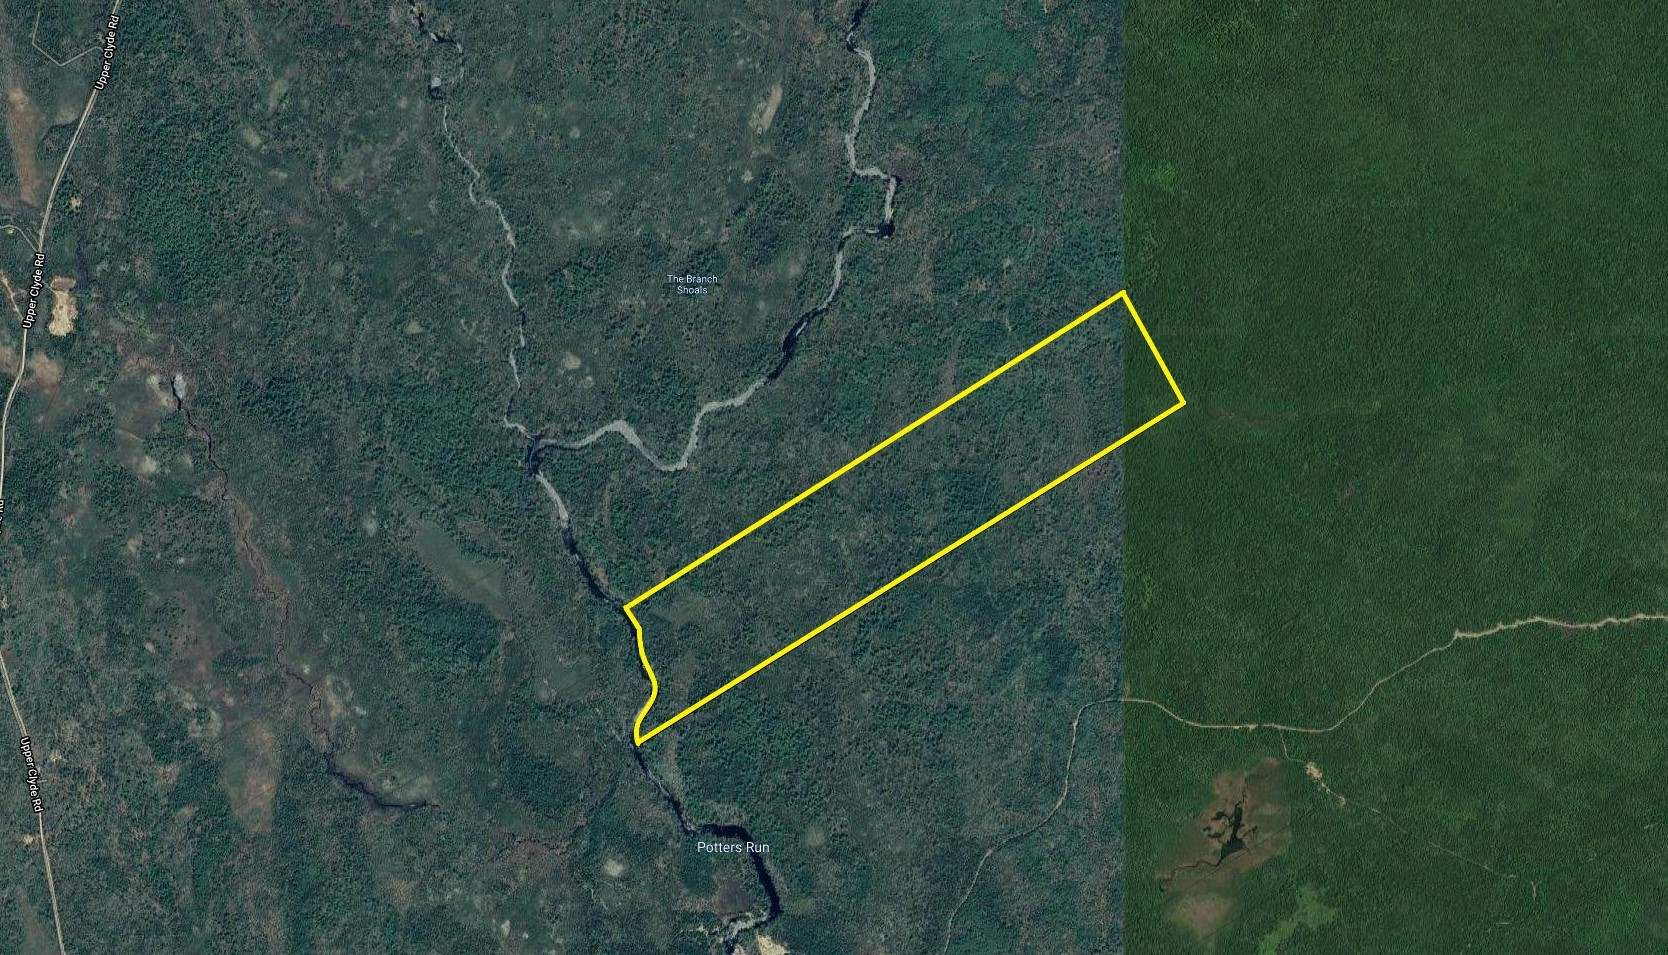 Main Photo: Lot 49-50 Dirty Creek in Clyde River: 407-Shelburne County Vacant Land for sale (South Shore)  : MLS®# 202103110